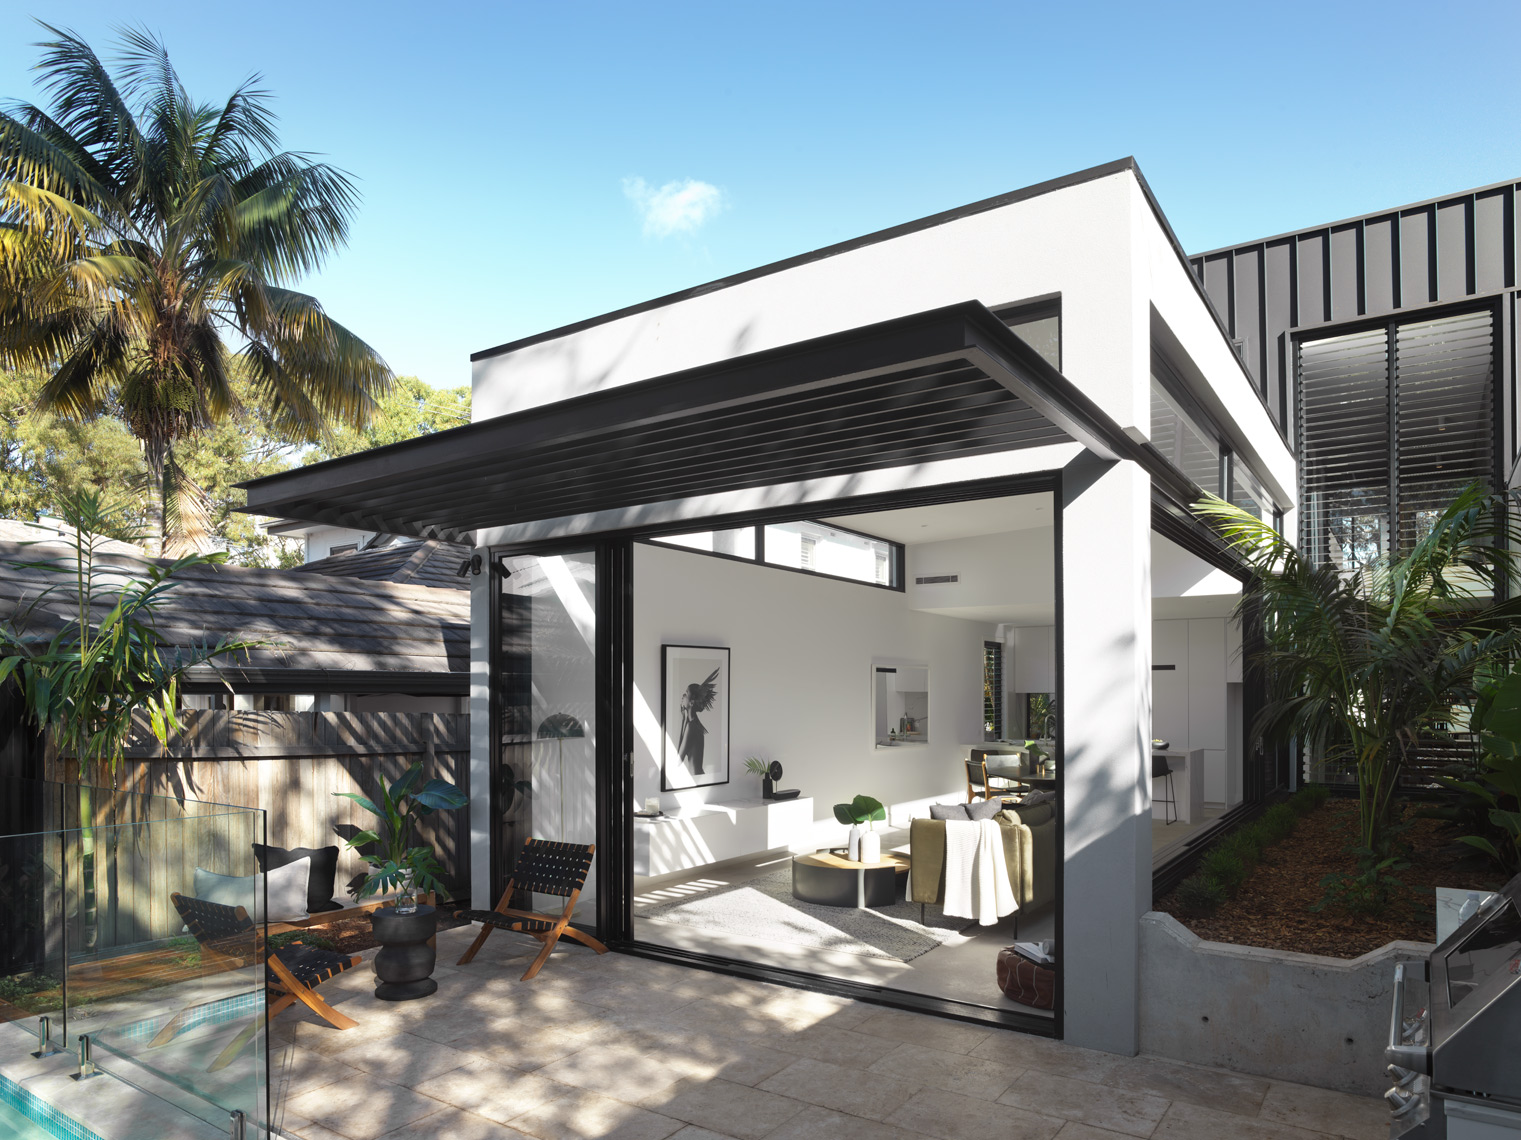 luke-butterly-cronulla-project-112-house-by-mason-projects-architecture-photography-sydney-2